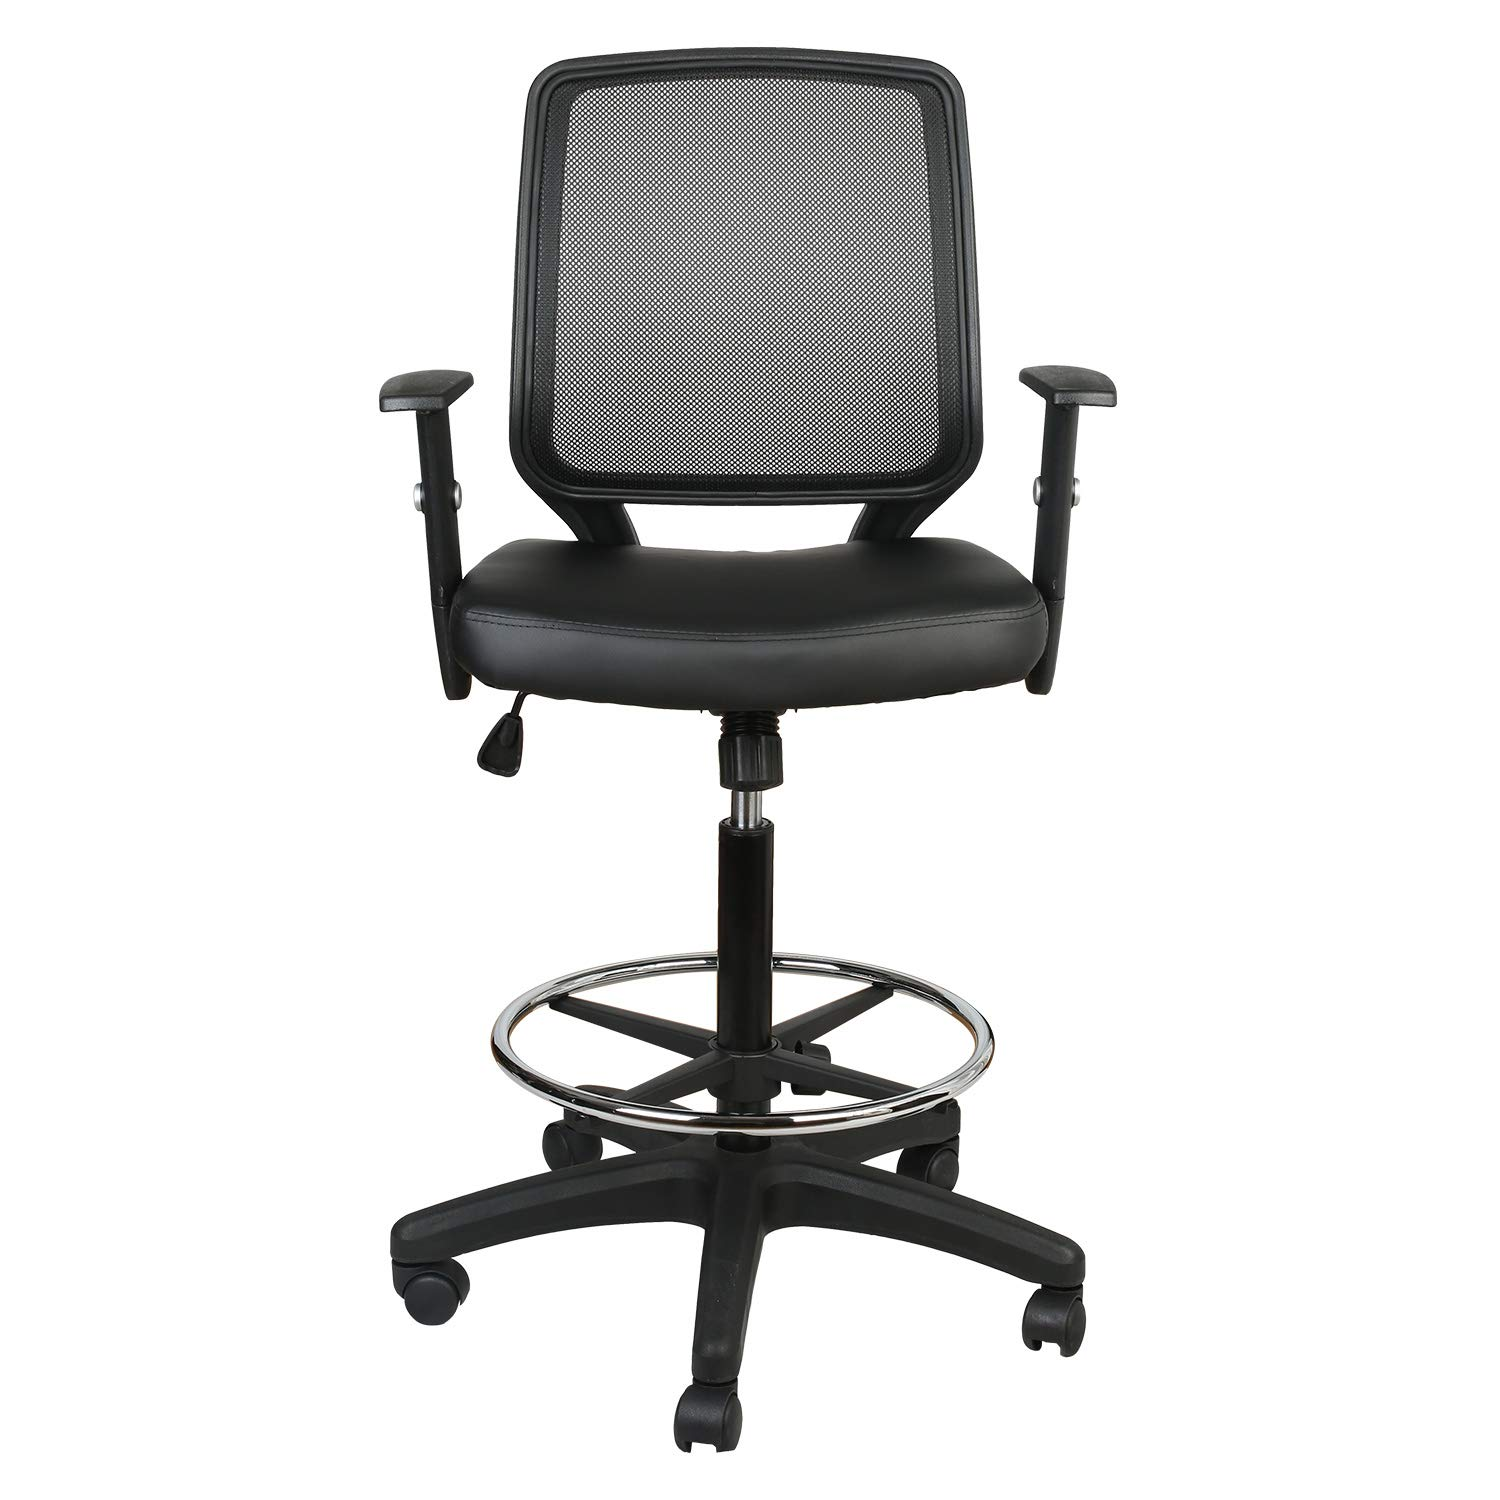 LUCKWIND Office Drafting Chair Mesh - Adjustable Arm Task Ergonomic Lumbar Support MidBack Computer Desk Chair Swivel Chair with Adjustable Chrome Foot Rest (SGS-BIFMA) Tilt Control 330lbs (Black Pu) by LUCKWIND